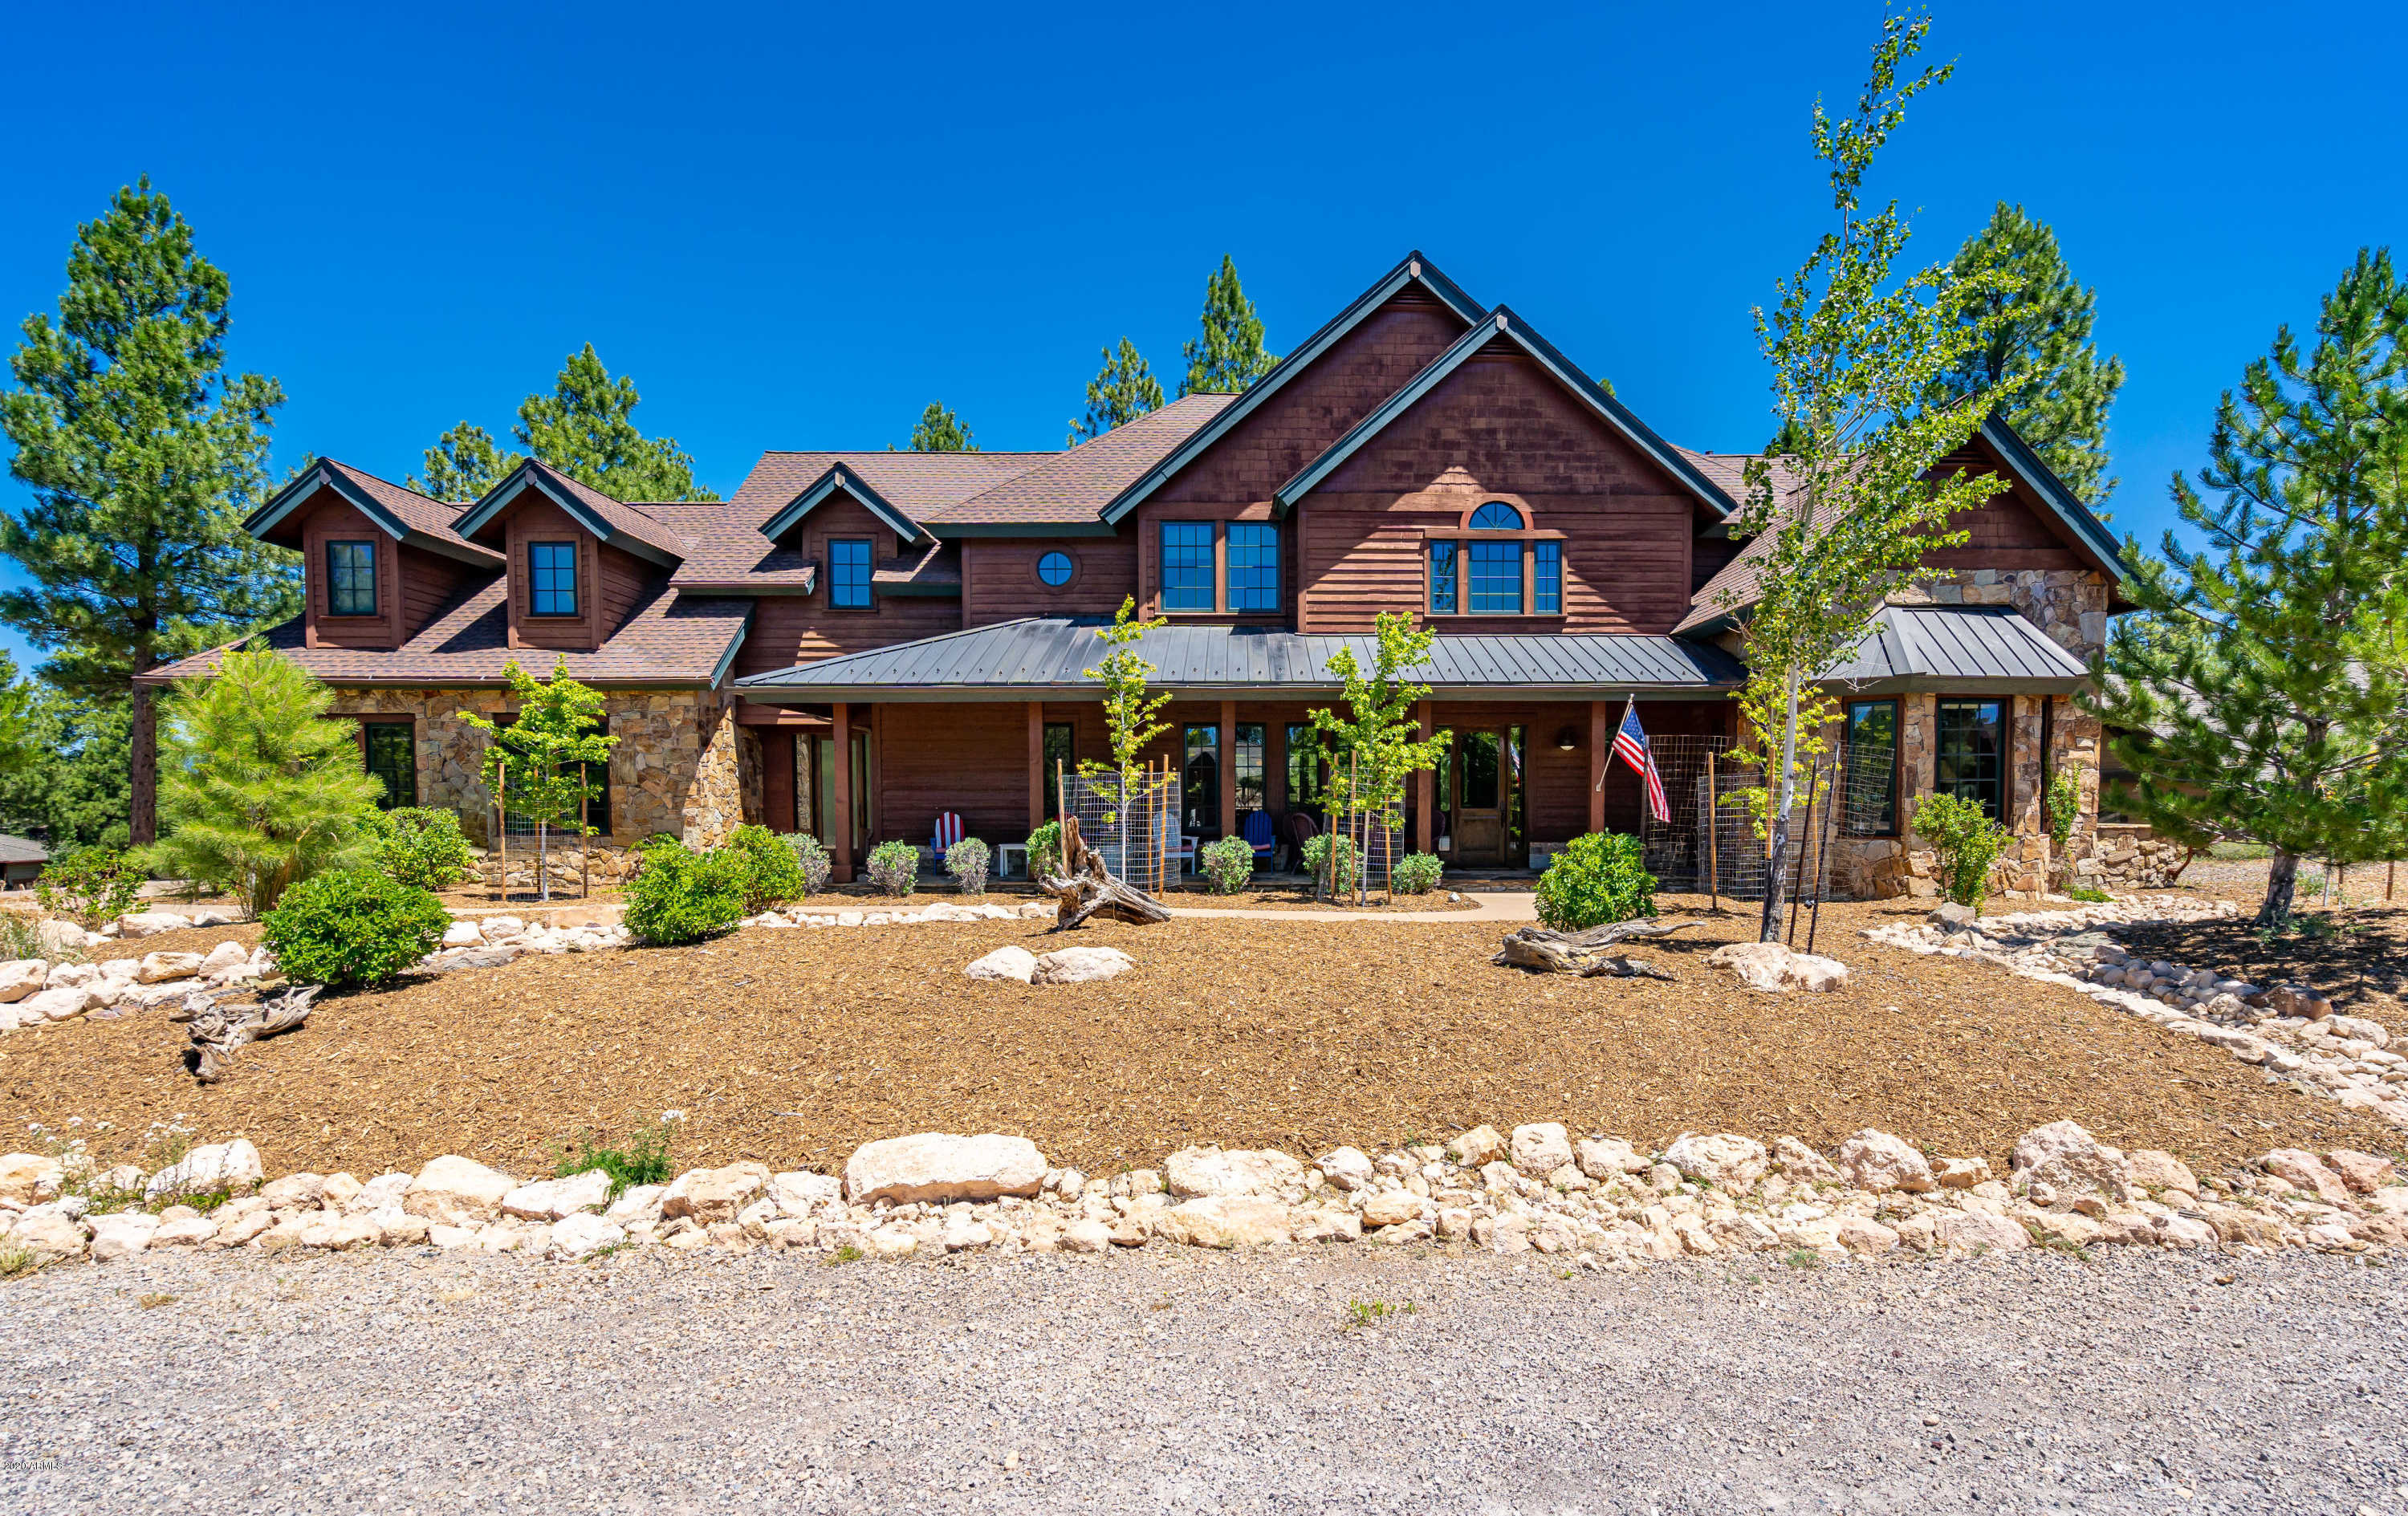 $1,495,000 - 4Br/5Ba - Home for Sale in Estates At Pine Canyon Unit 1 Resub, Flagstaff